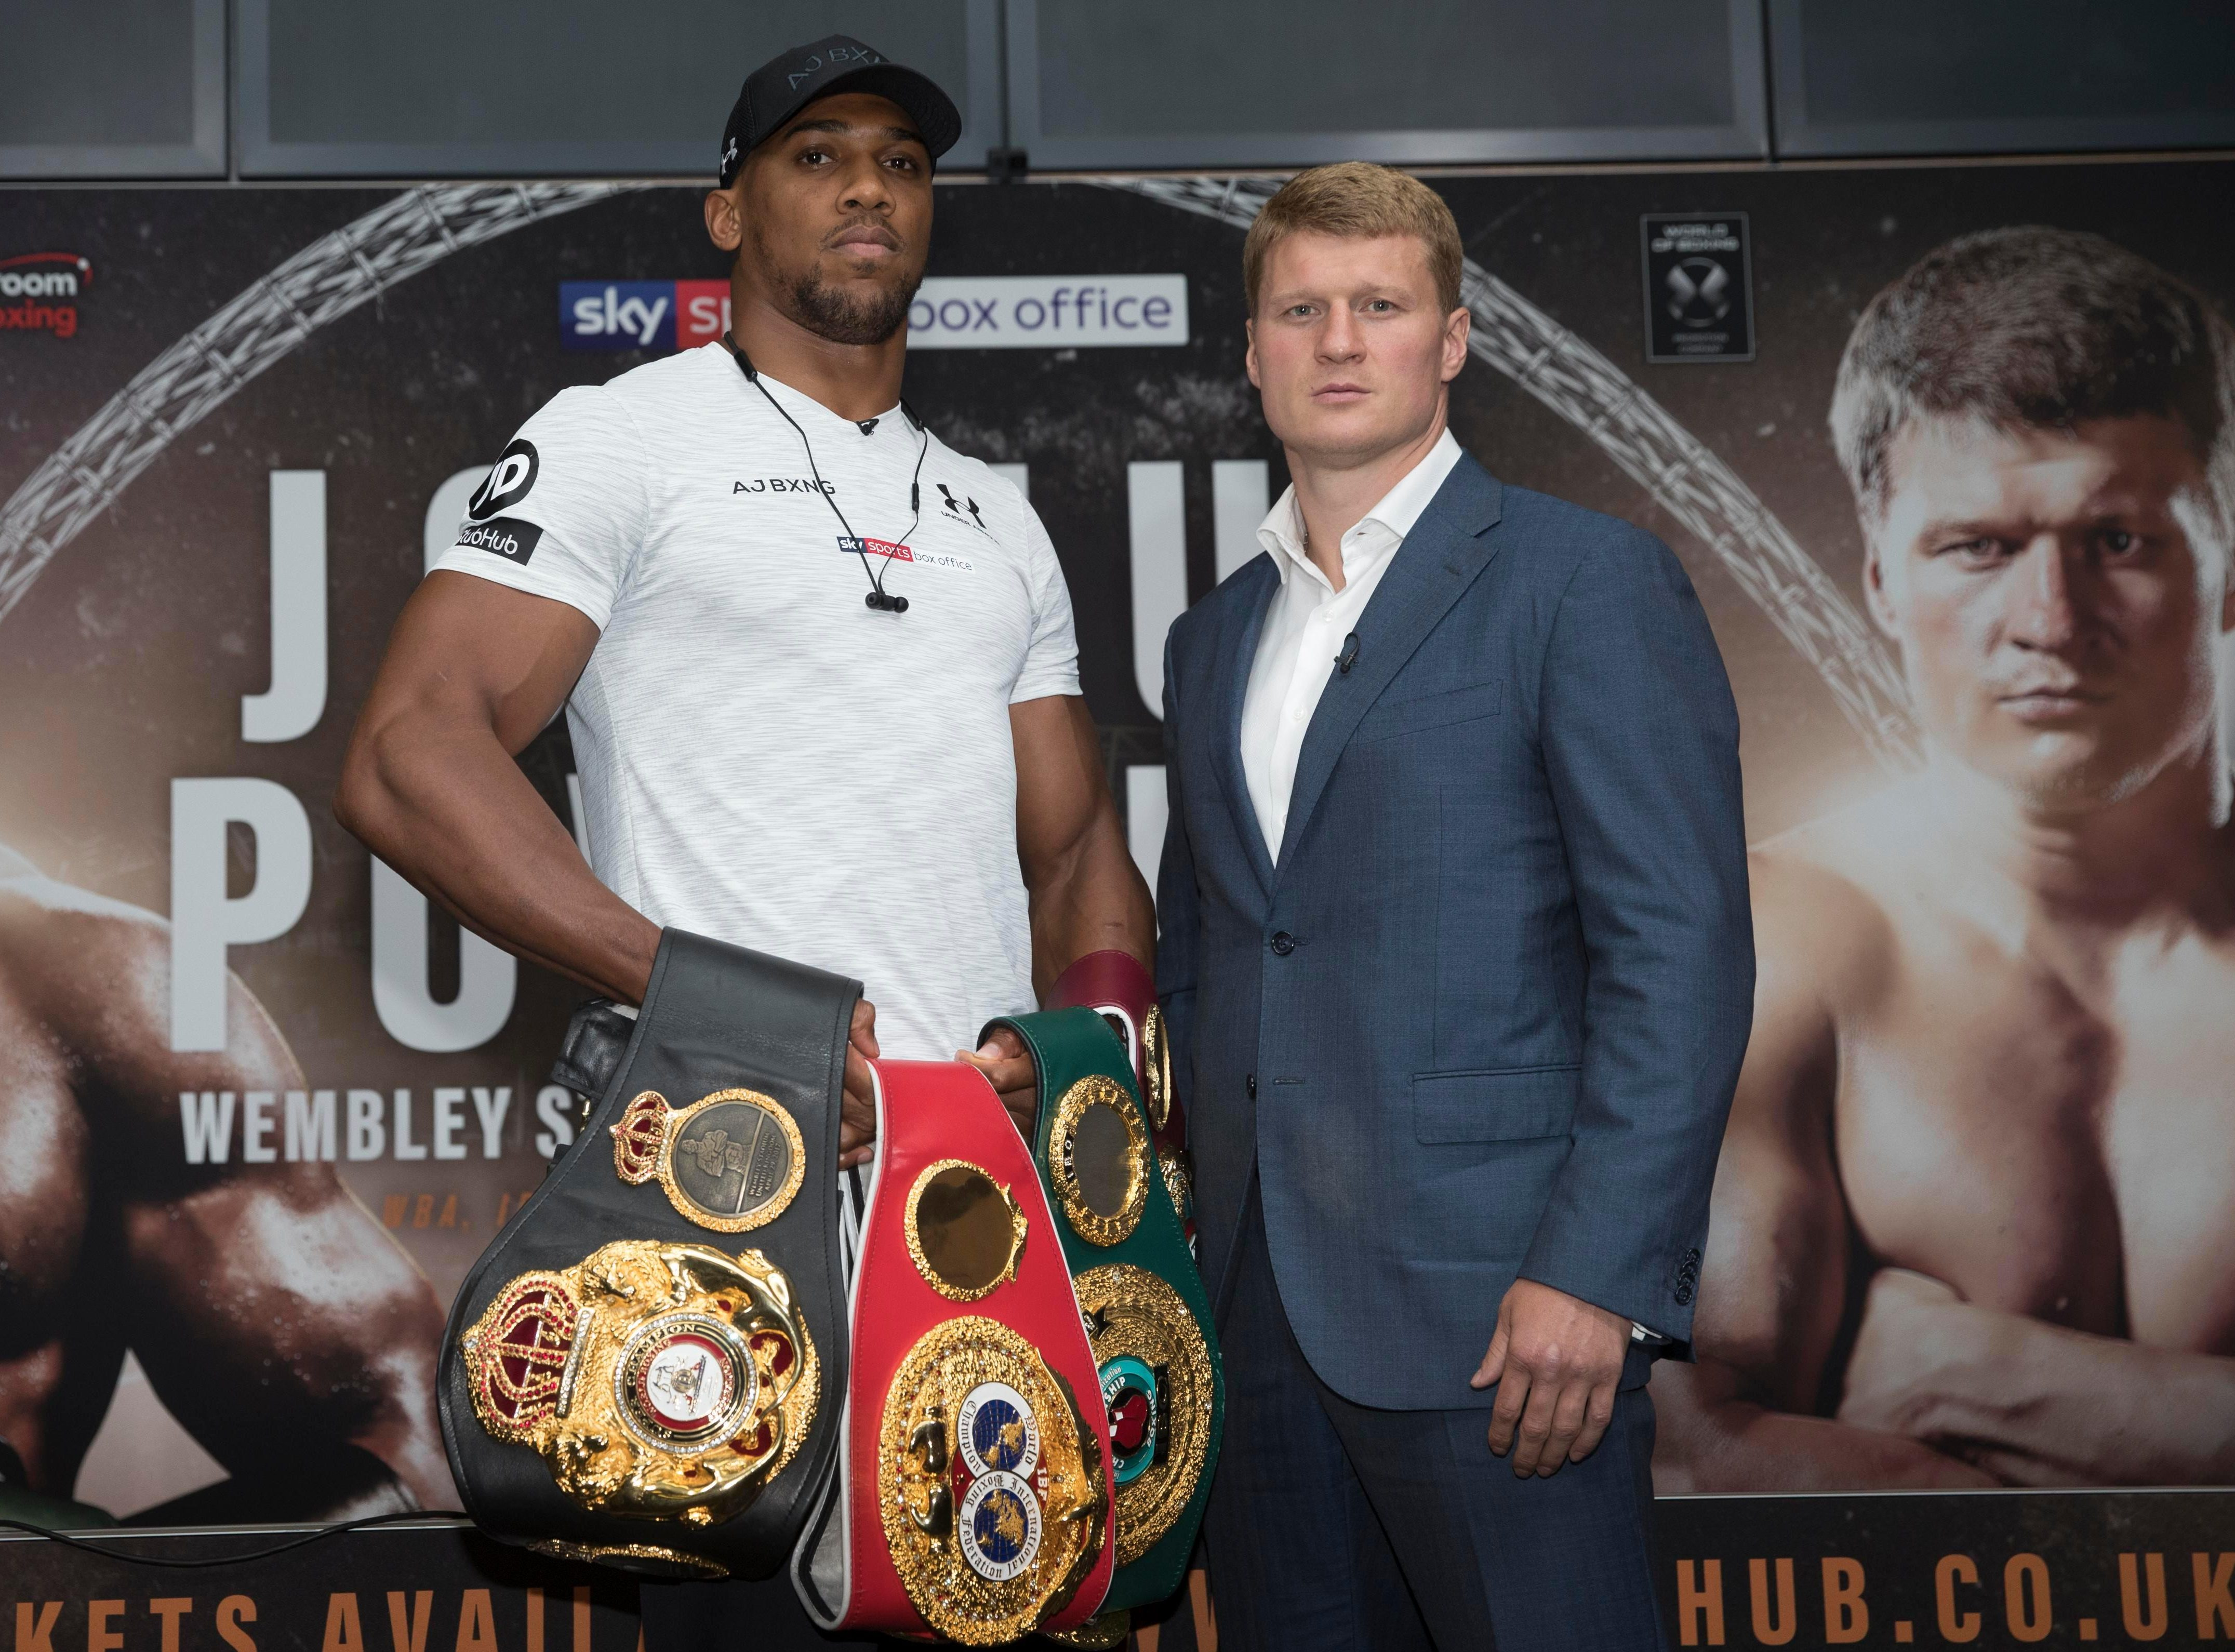 Anthony Joshua will put his titles on the line against Alexander Povetkin at Wembley